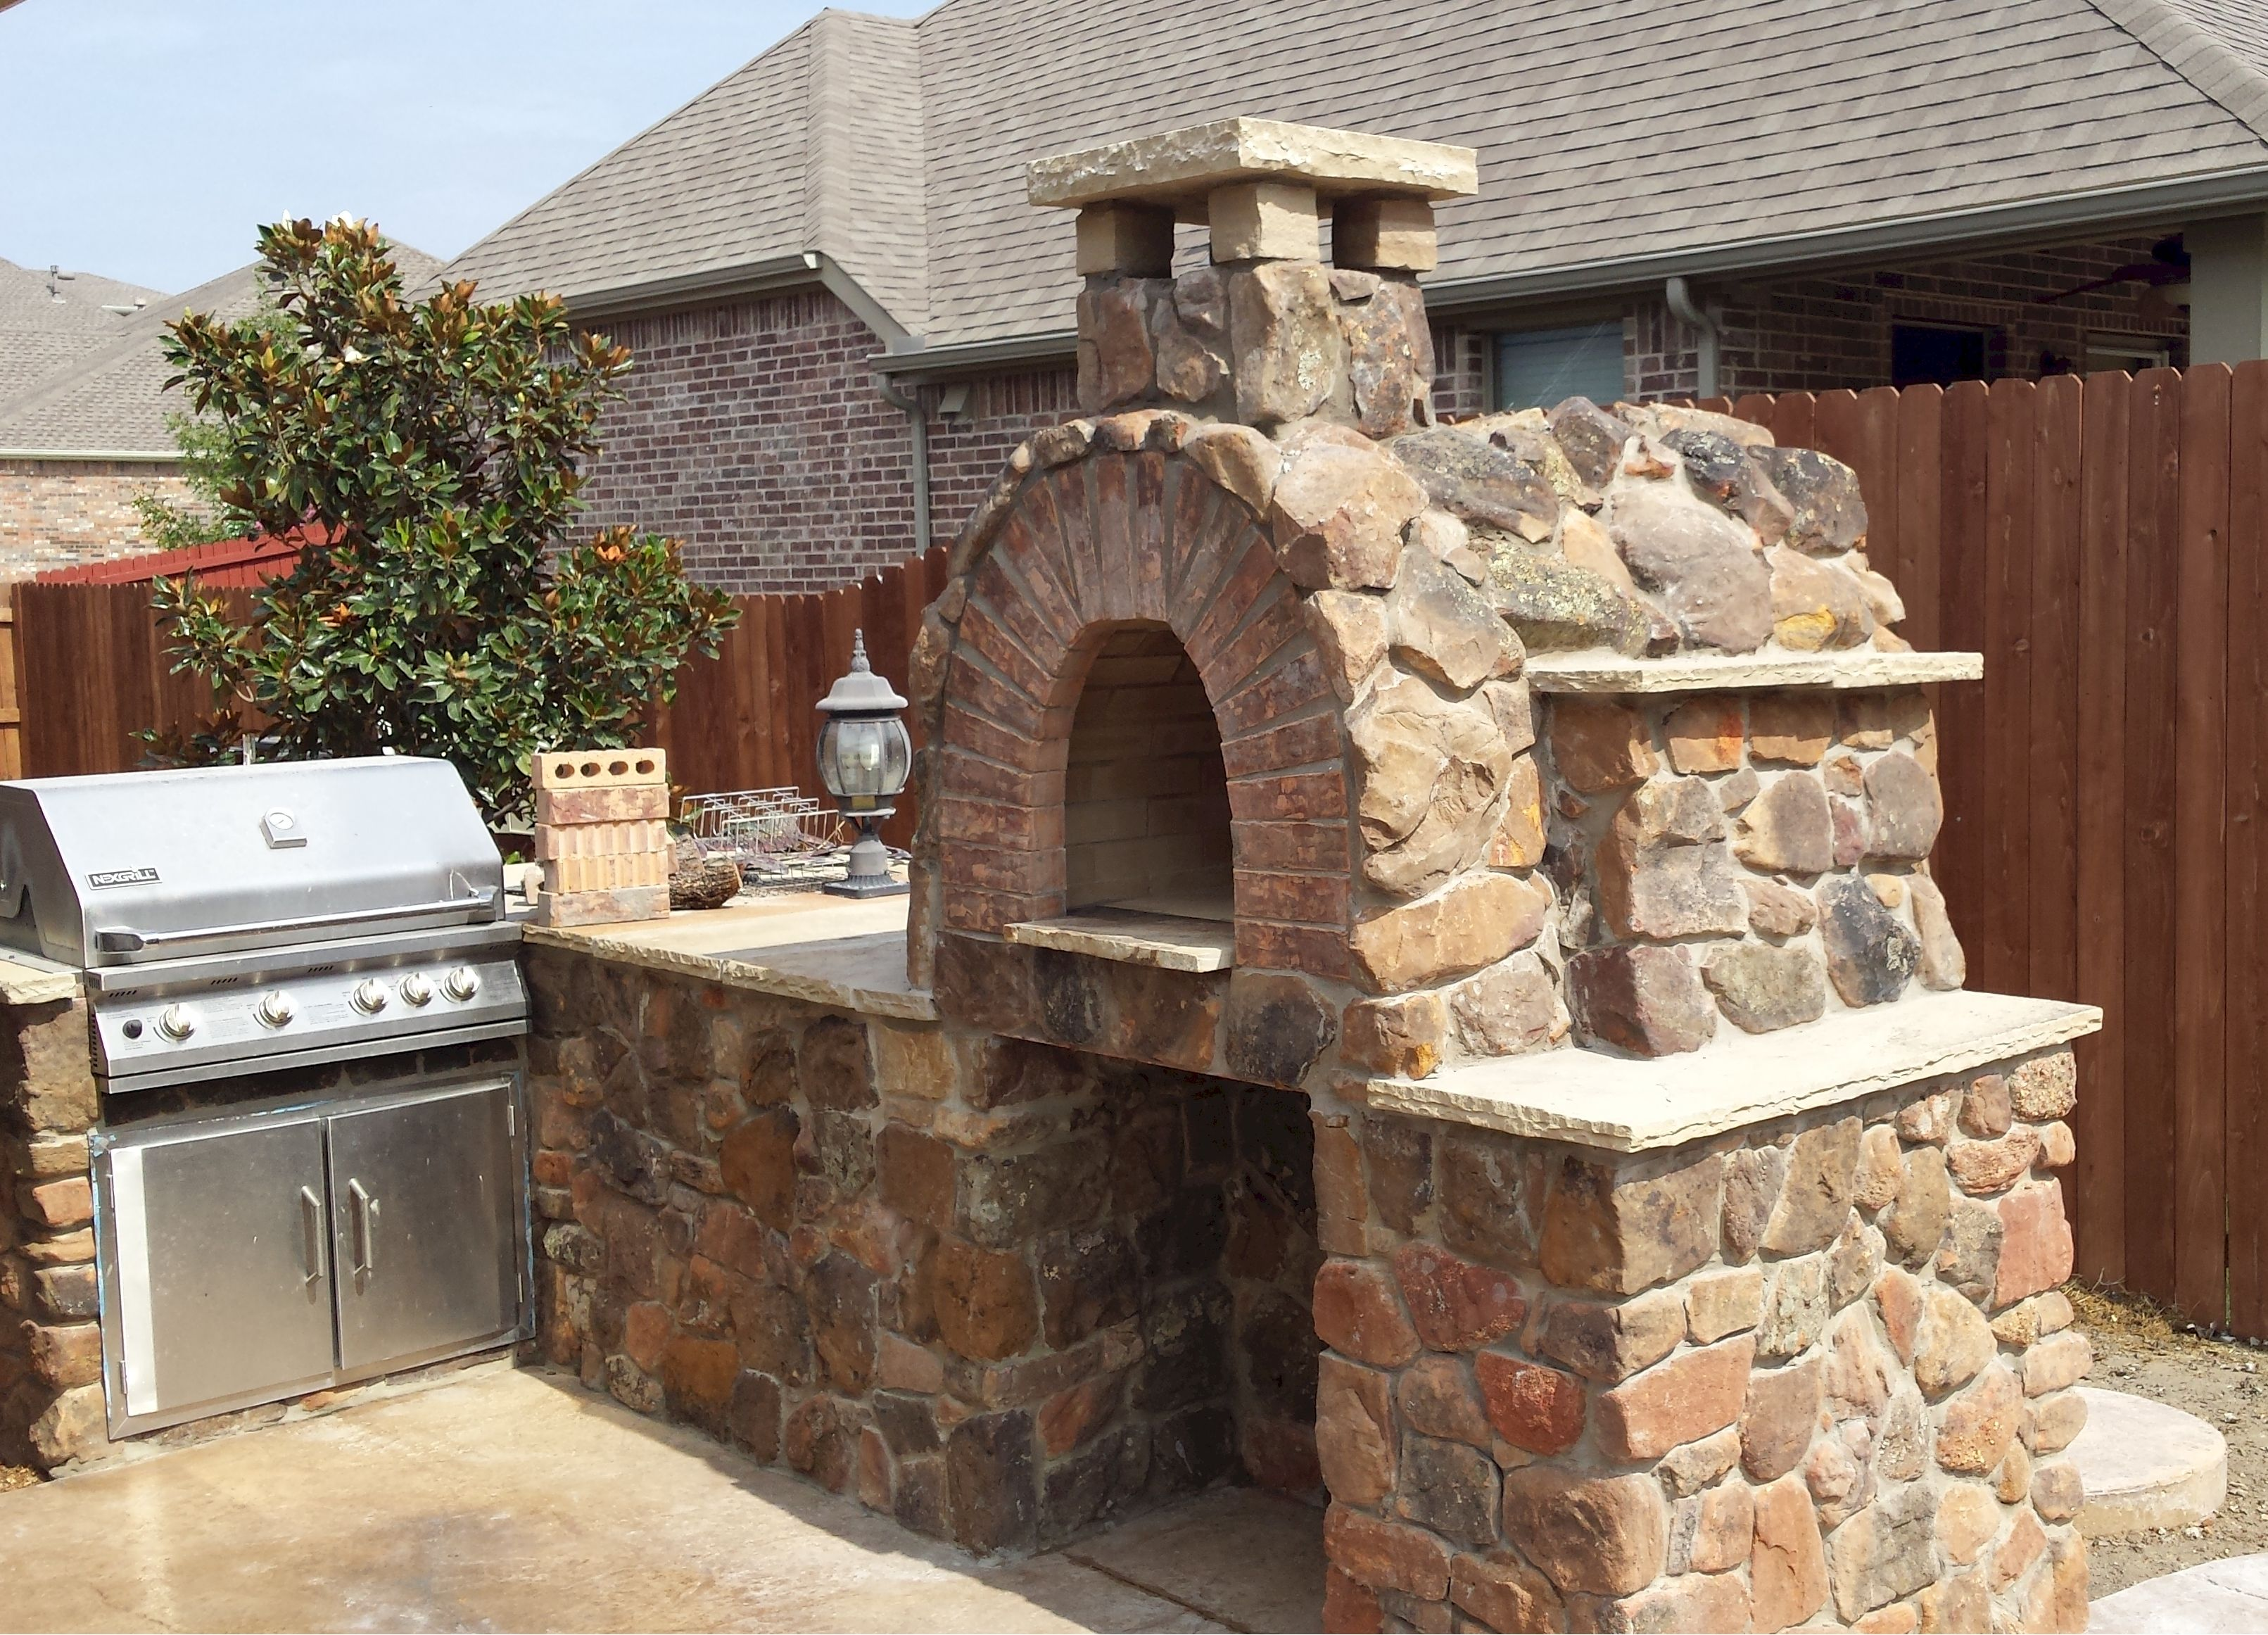 This Texas Sized Mattone Barile Grande Brick Oven Is Finished With A Stone Veneer That Is Also Used On The Pizza Oven Brick Pizza Oven Wood Burning Pizza Oven